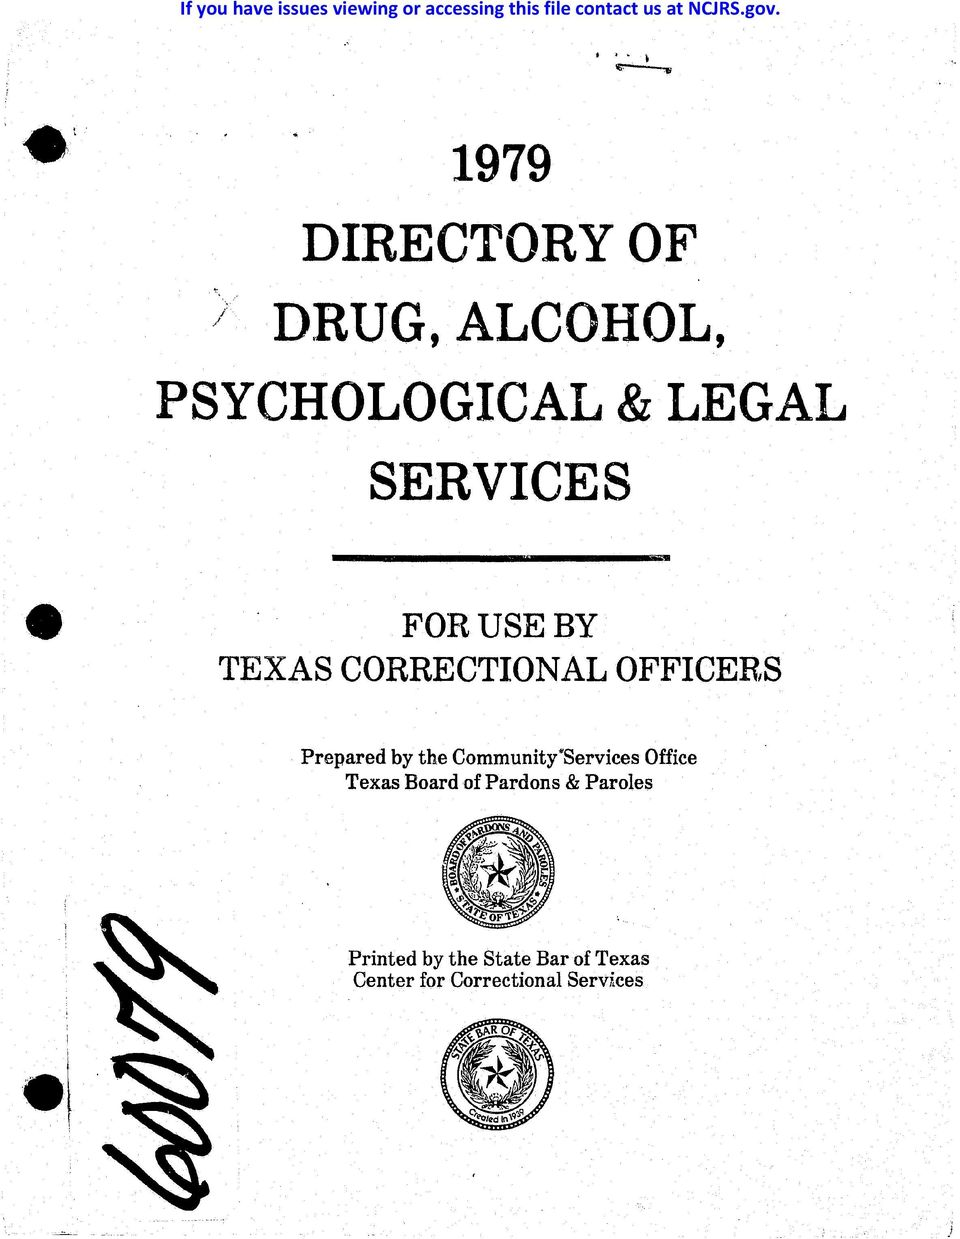 .. FOR USE BY TEXAS CORRECTIONAL OFFICER,S Prepared by the Community'Services Office